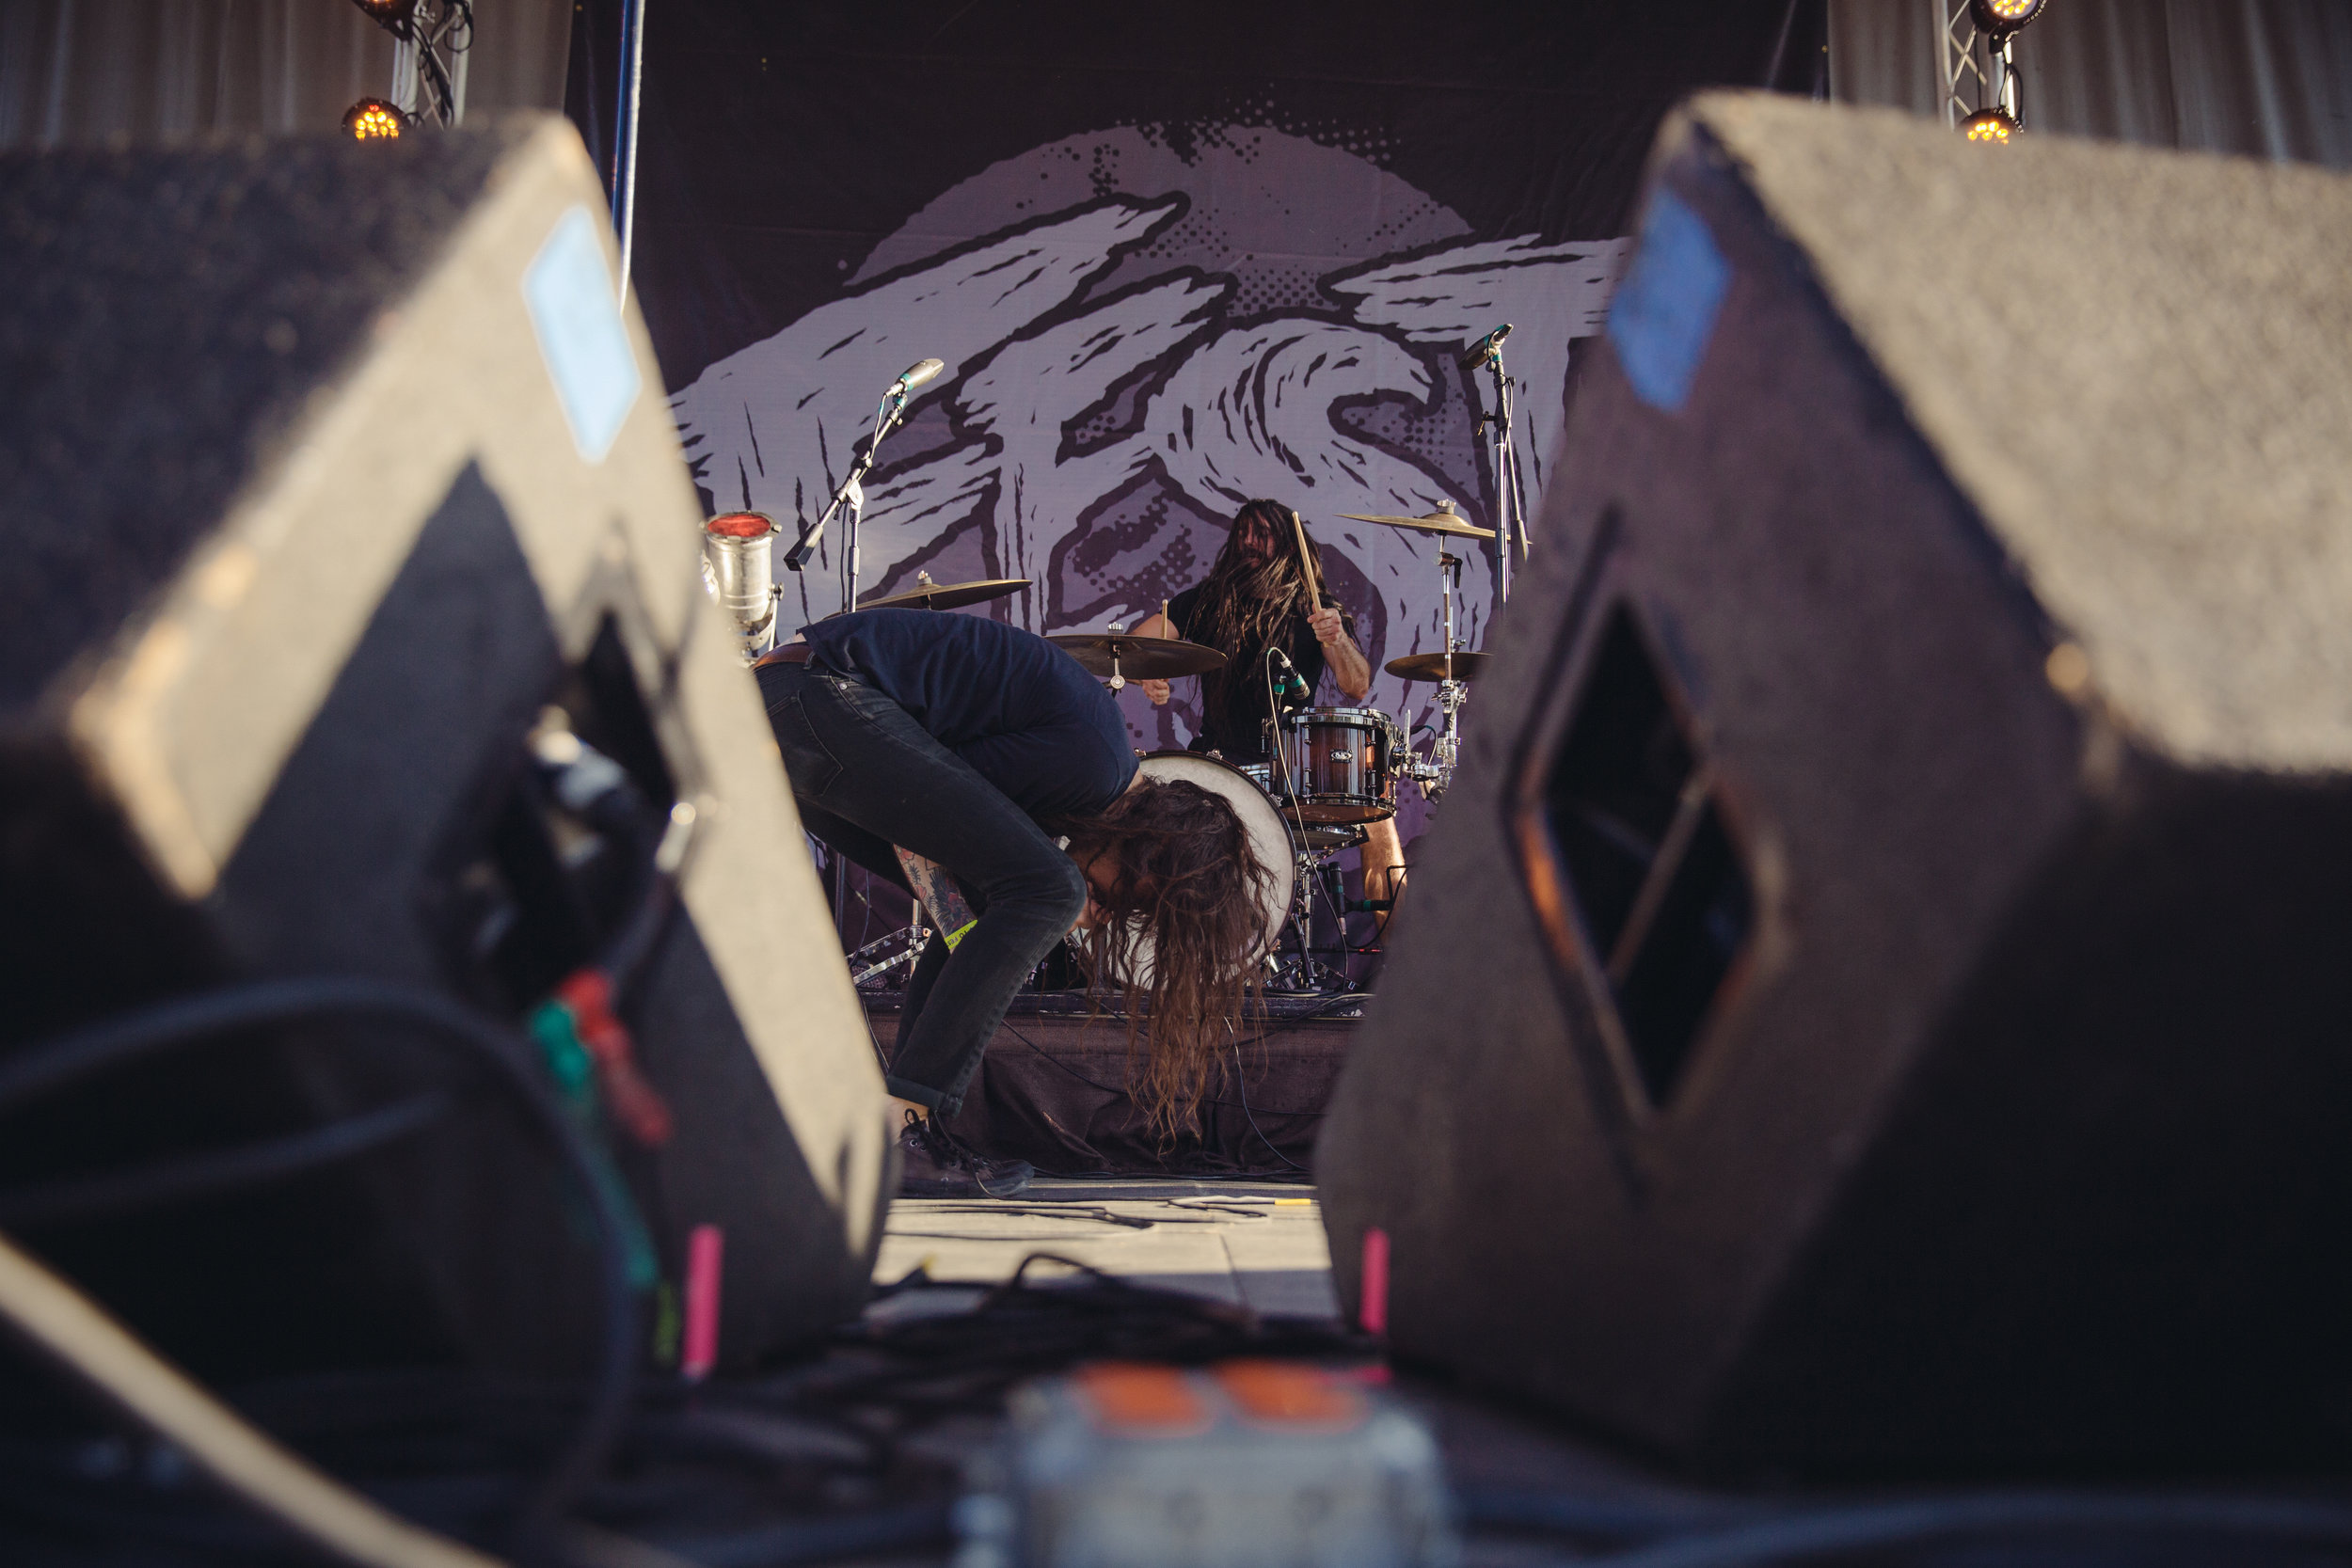 pianos-become-the-teeth---fest-14_23286854235_o.jpg